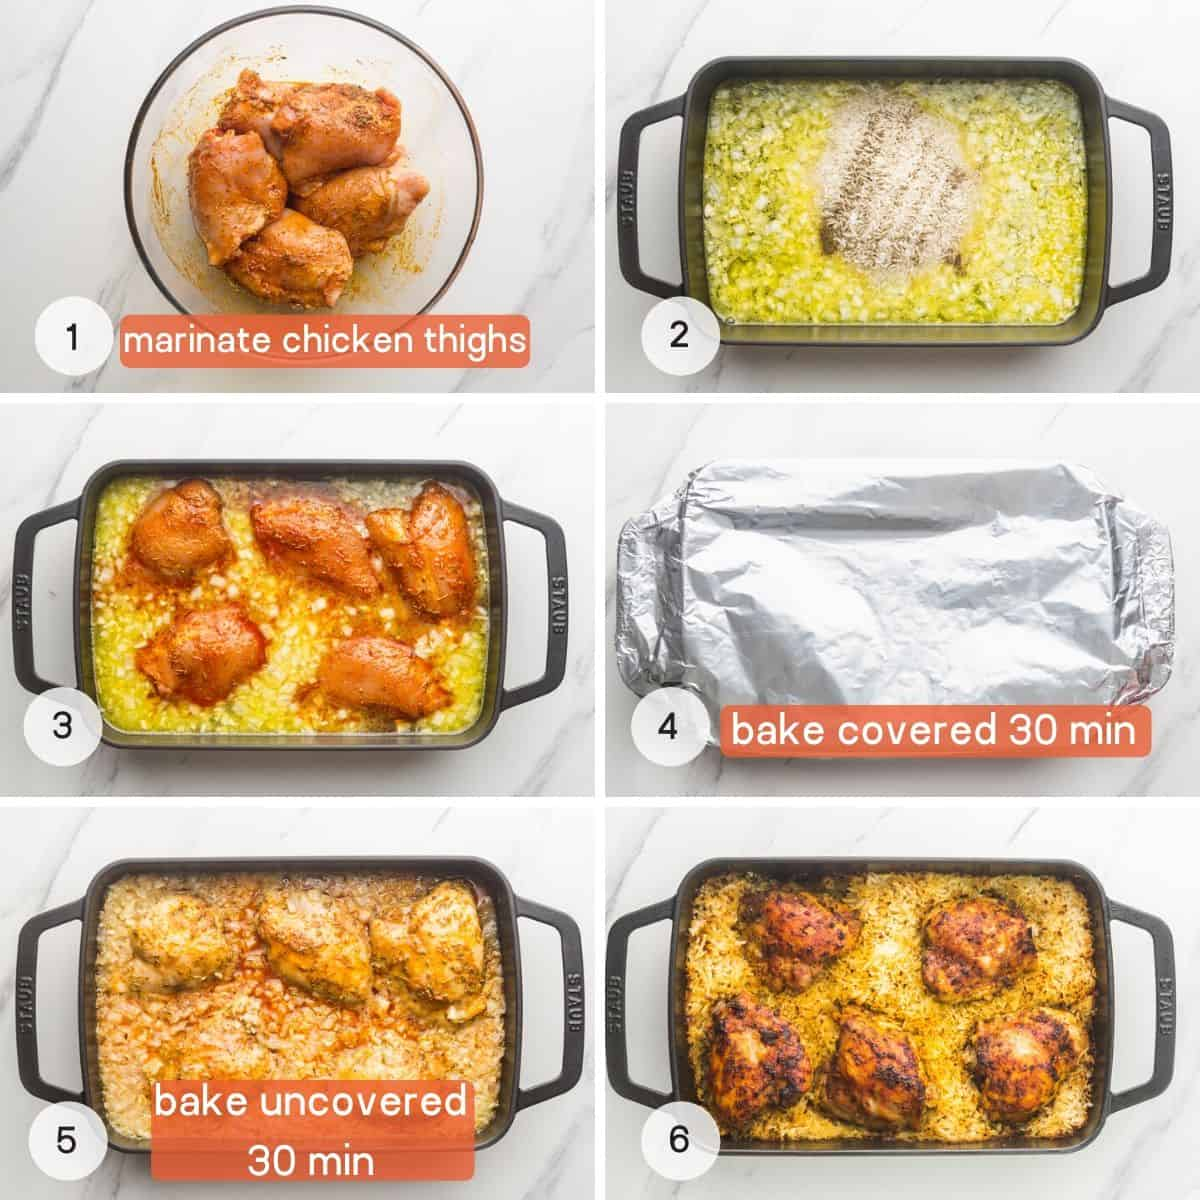 How to make oven baked chicken and rice